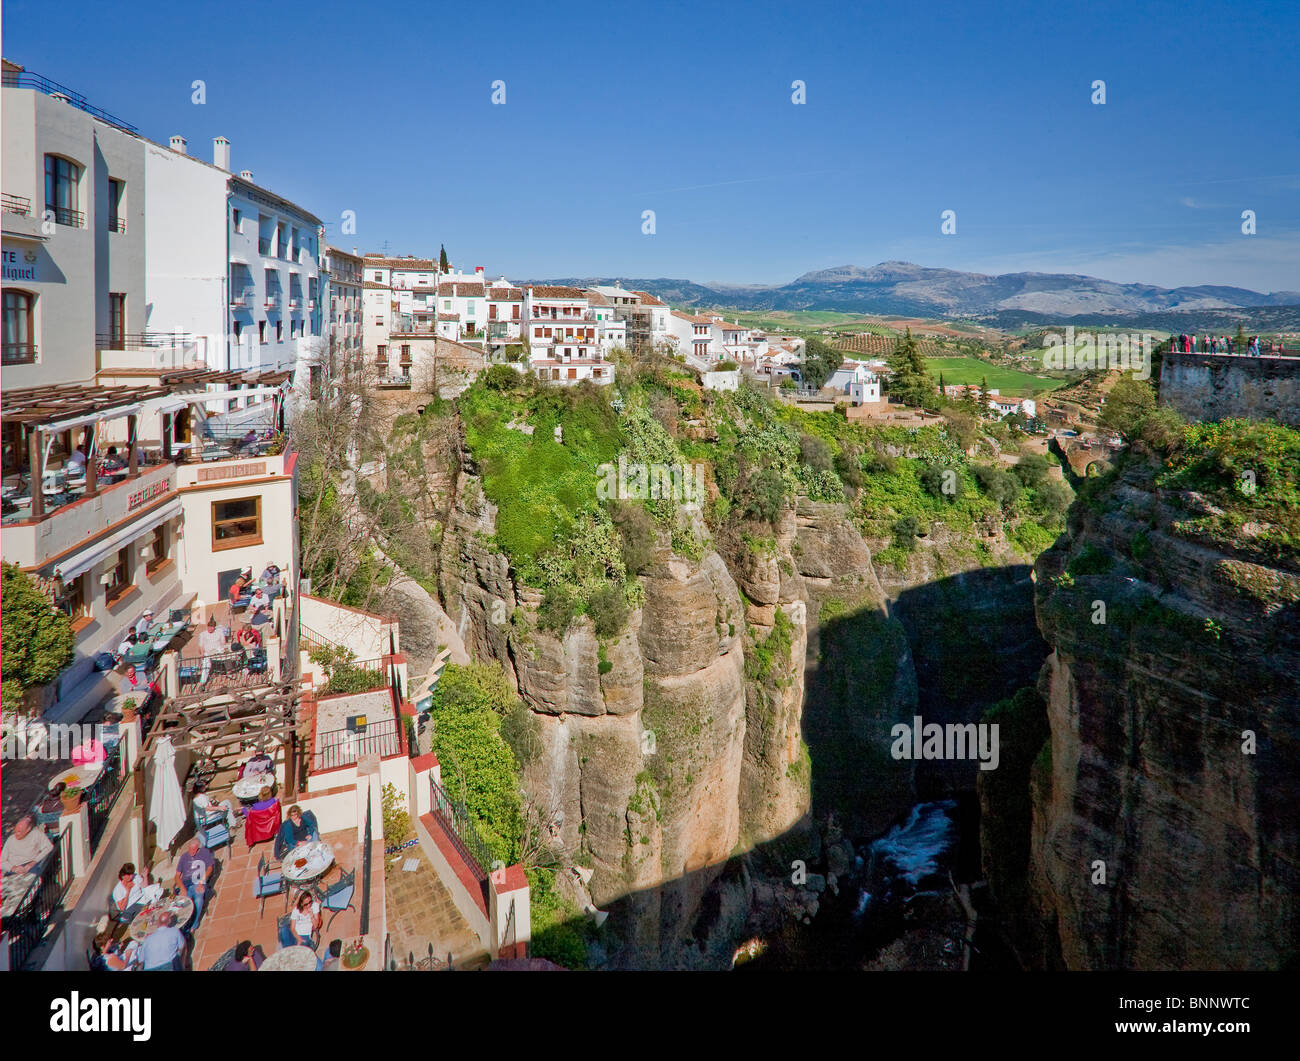 Andalusia Spain Malaga Ronda Middle Ages cliff connection protection traveling tourism vacation holidays - Stock Image